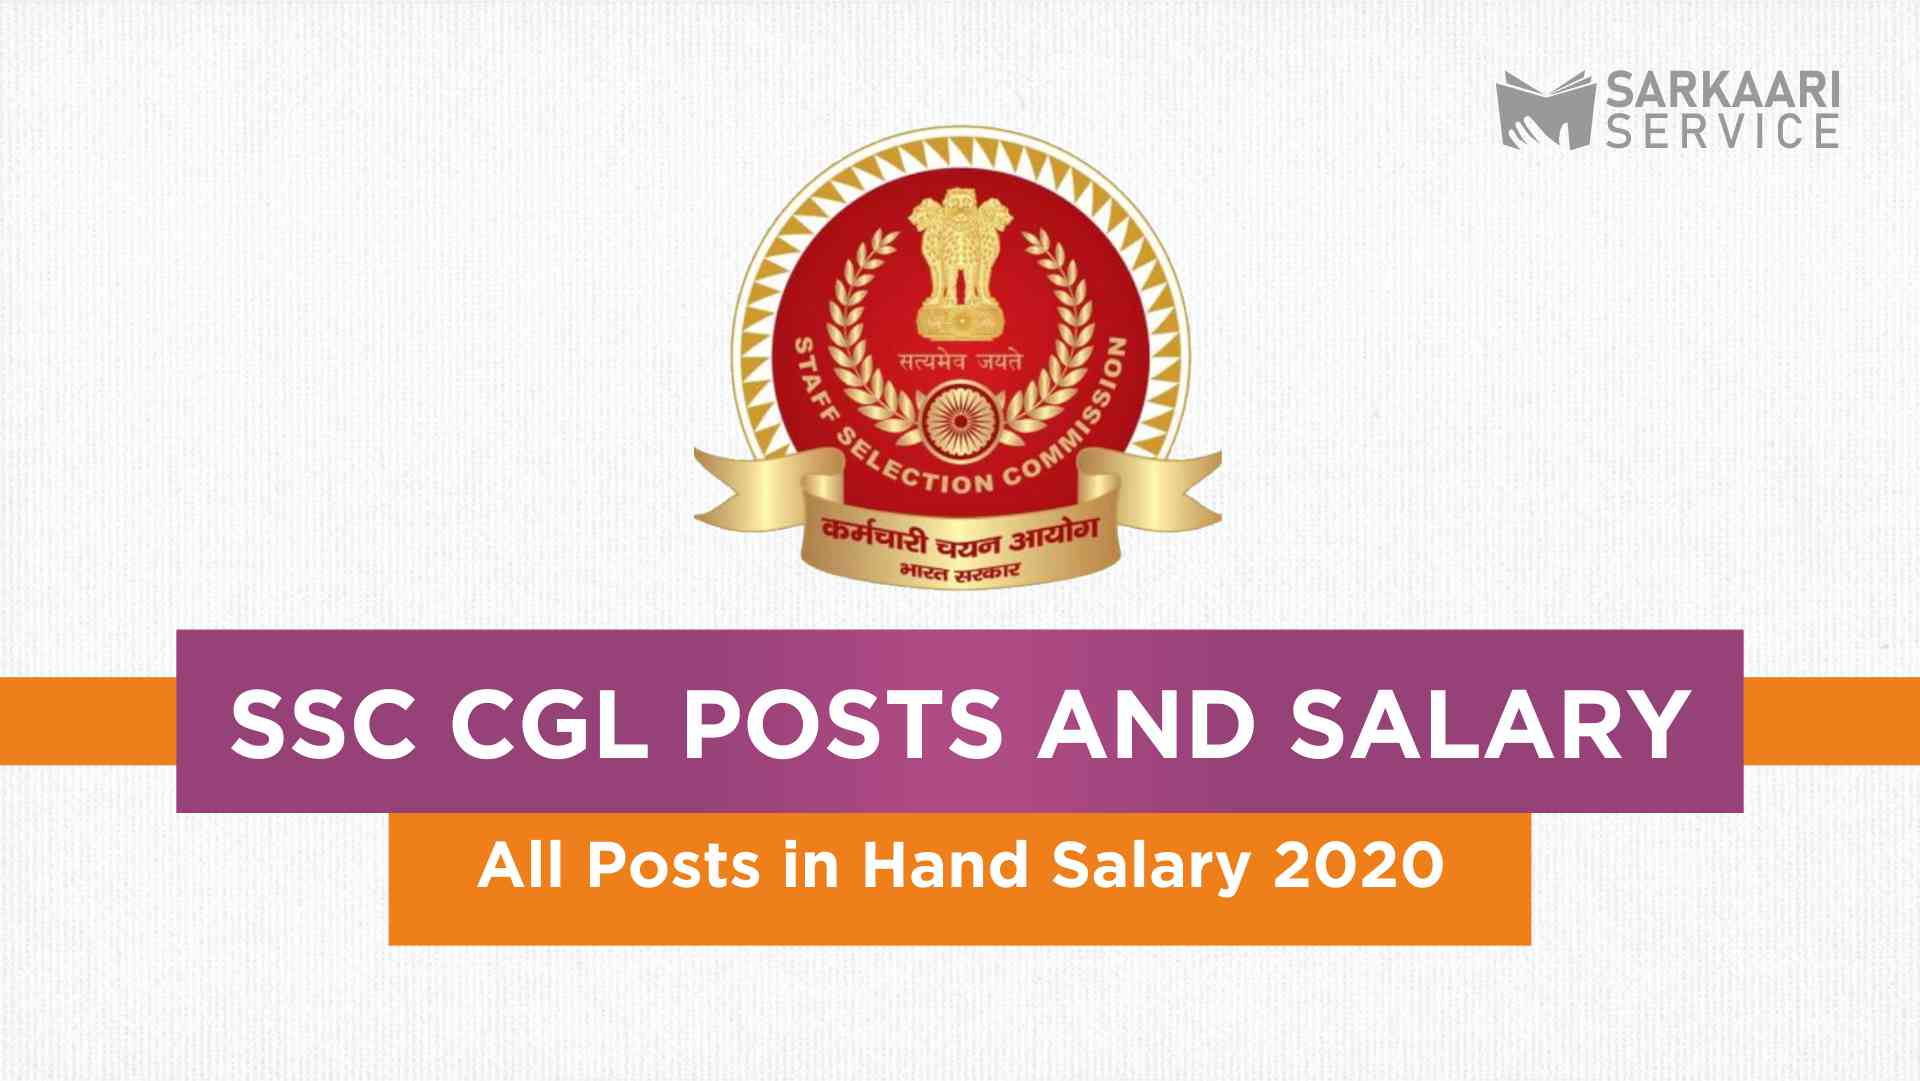 SSC CGL Posts and Salary | In Hand Salary 2020